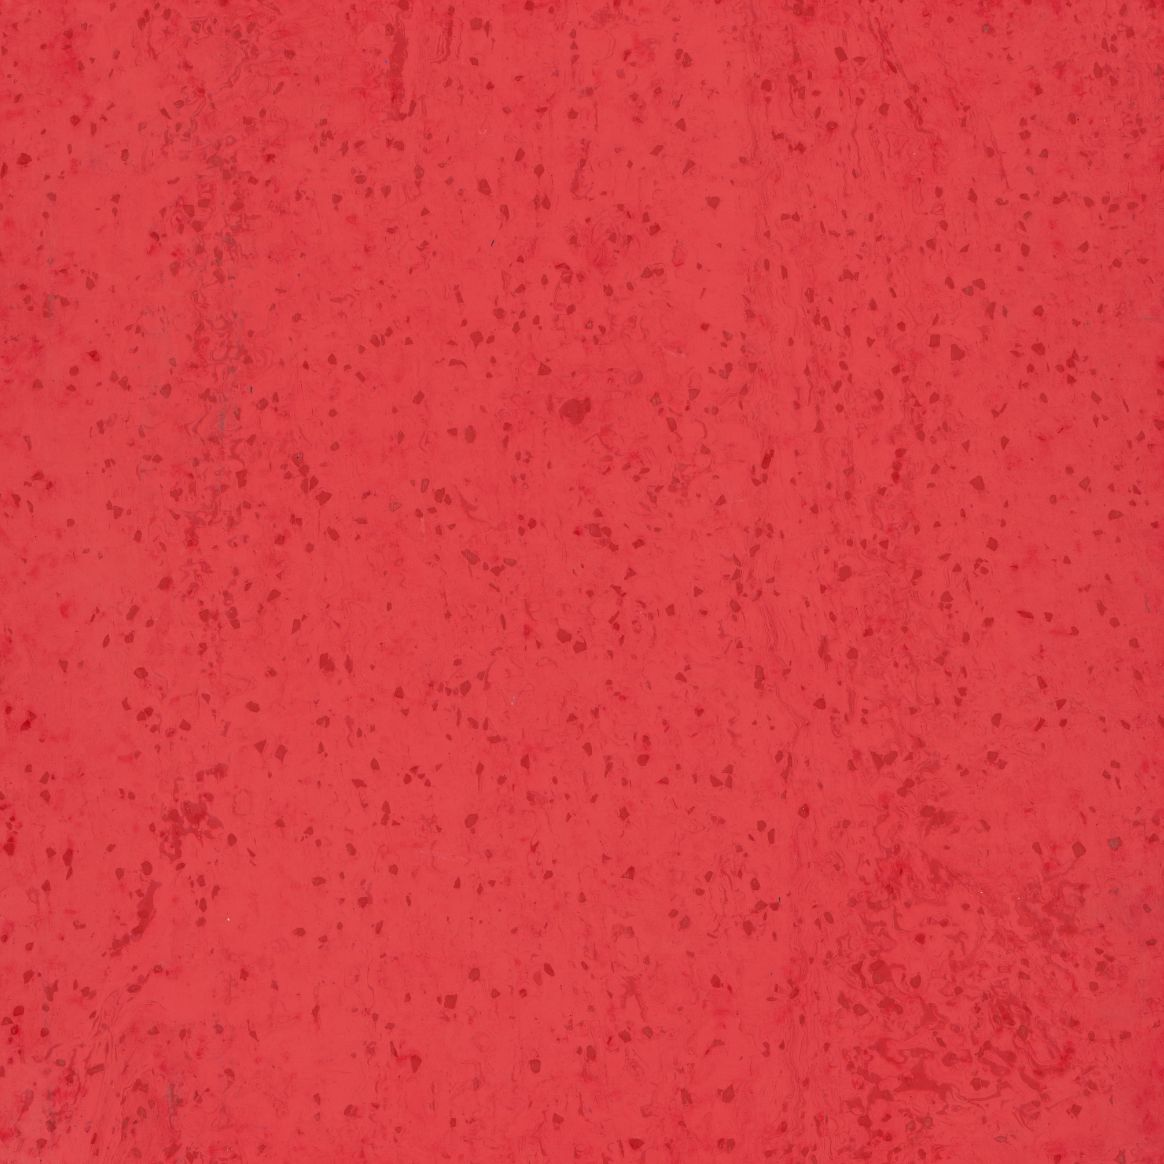 Mannington Teles Tile 35 x 35 Red Rock Canyon